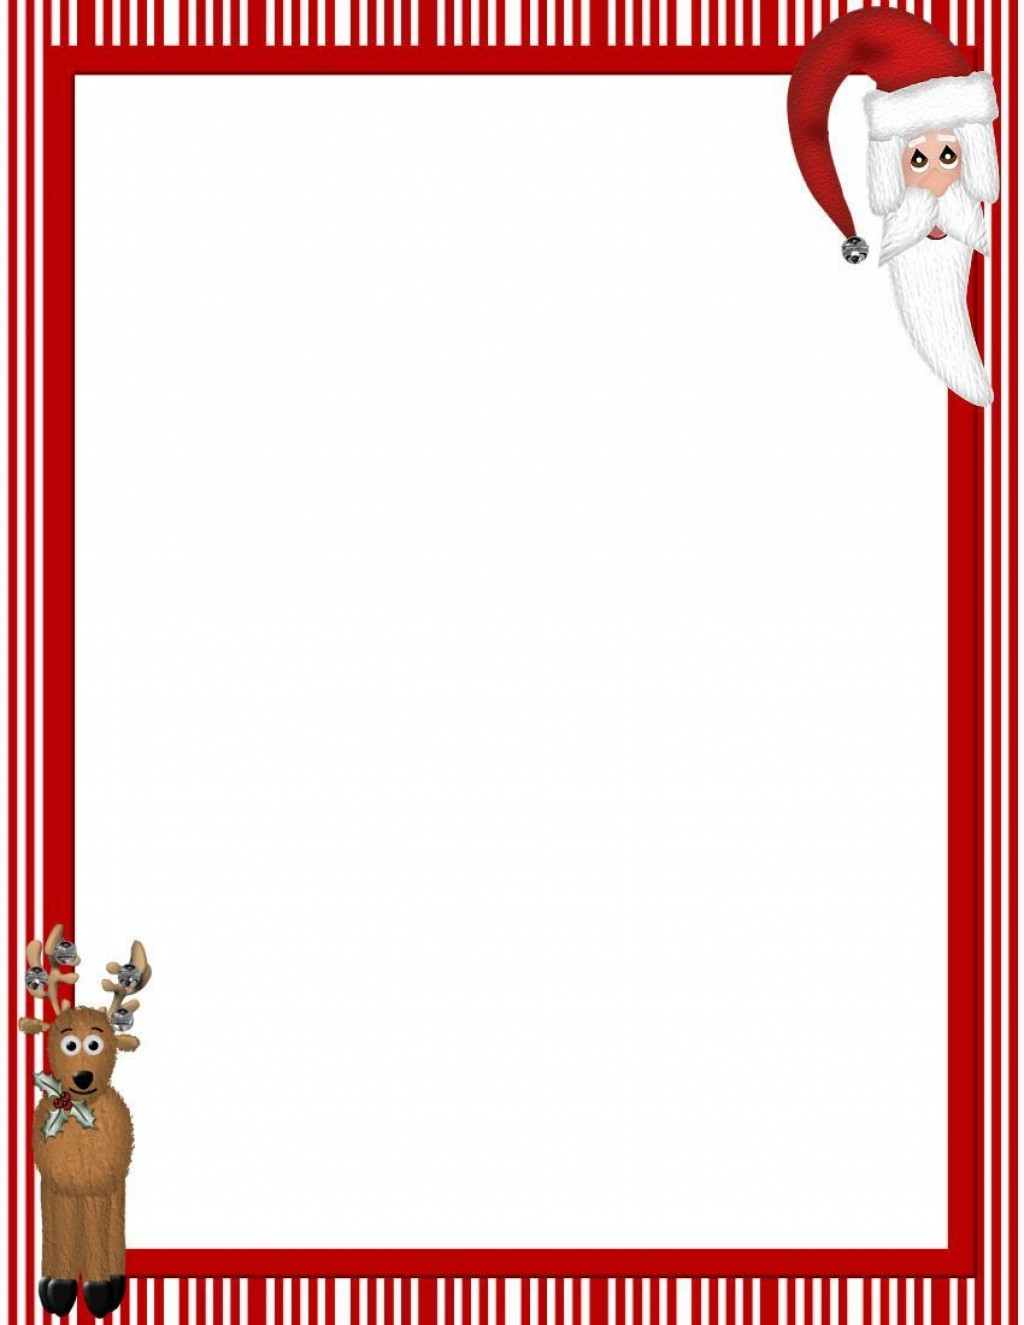 008 Phenomenal Free Christma Letter Template For Microsoft Word Concept  Downloadable NewsletterLarge